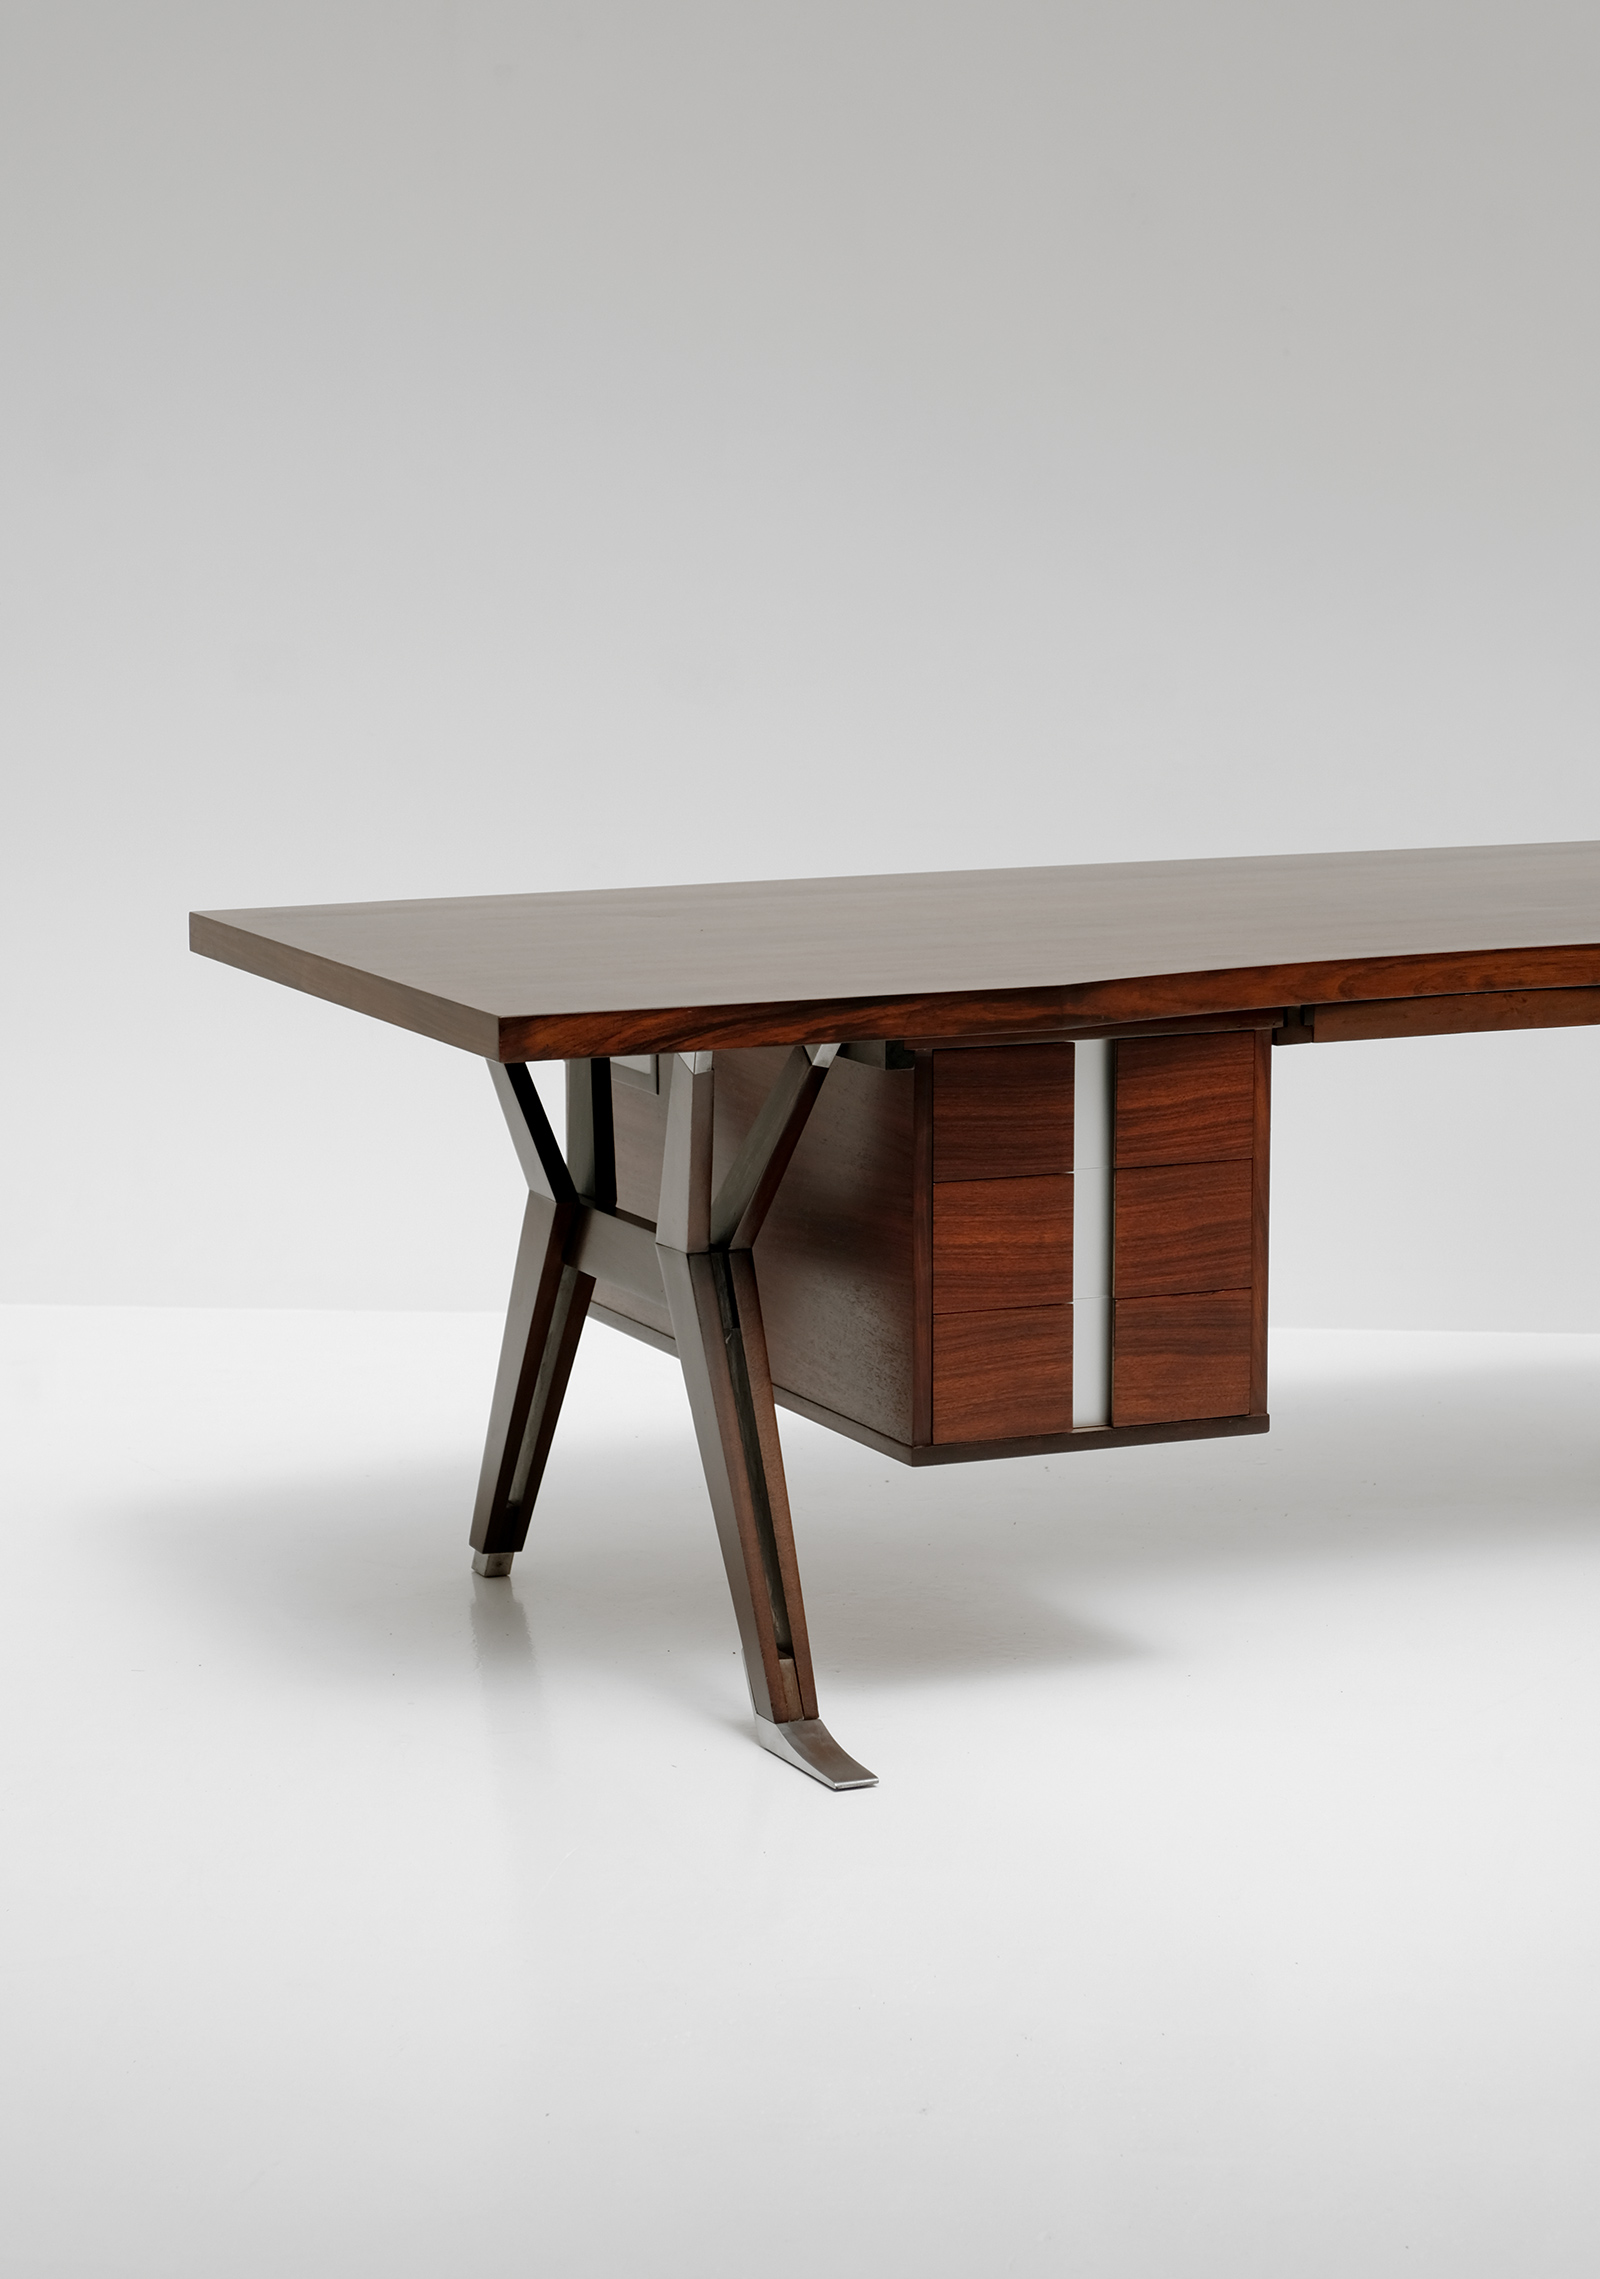 Executive Desk by Ico Parisi for MIM 1958image 2